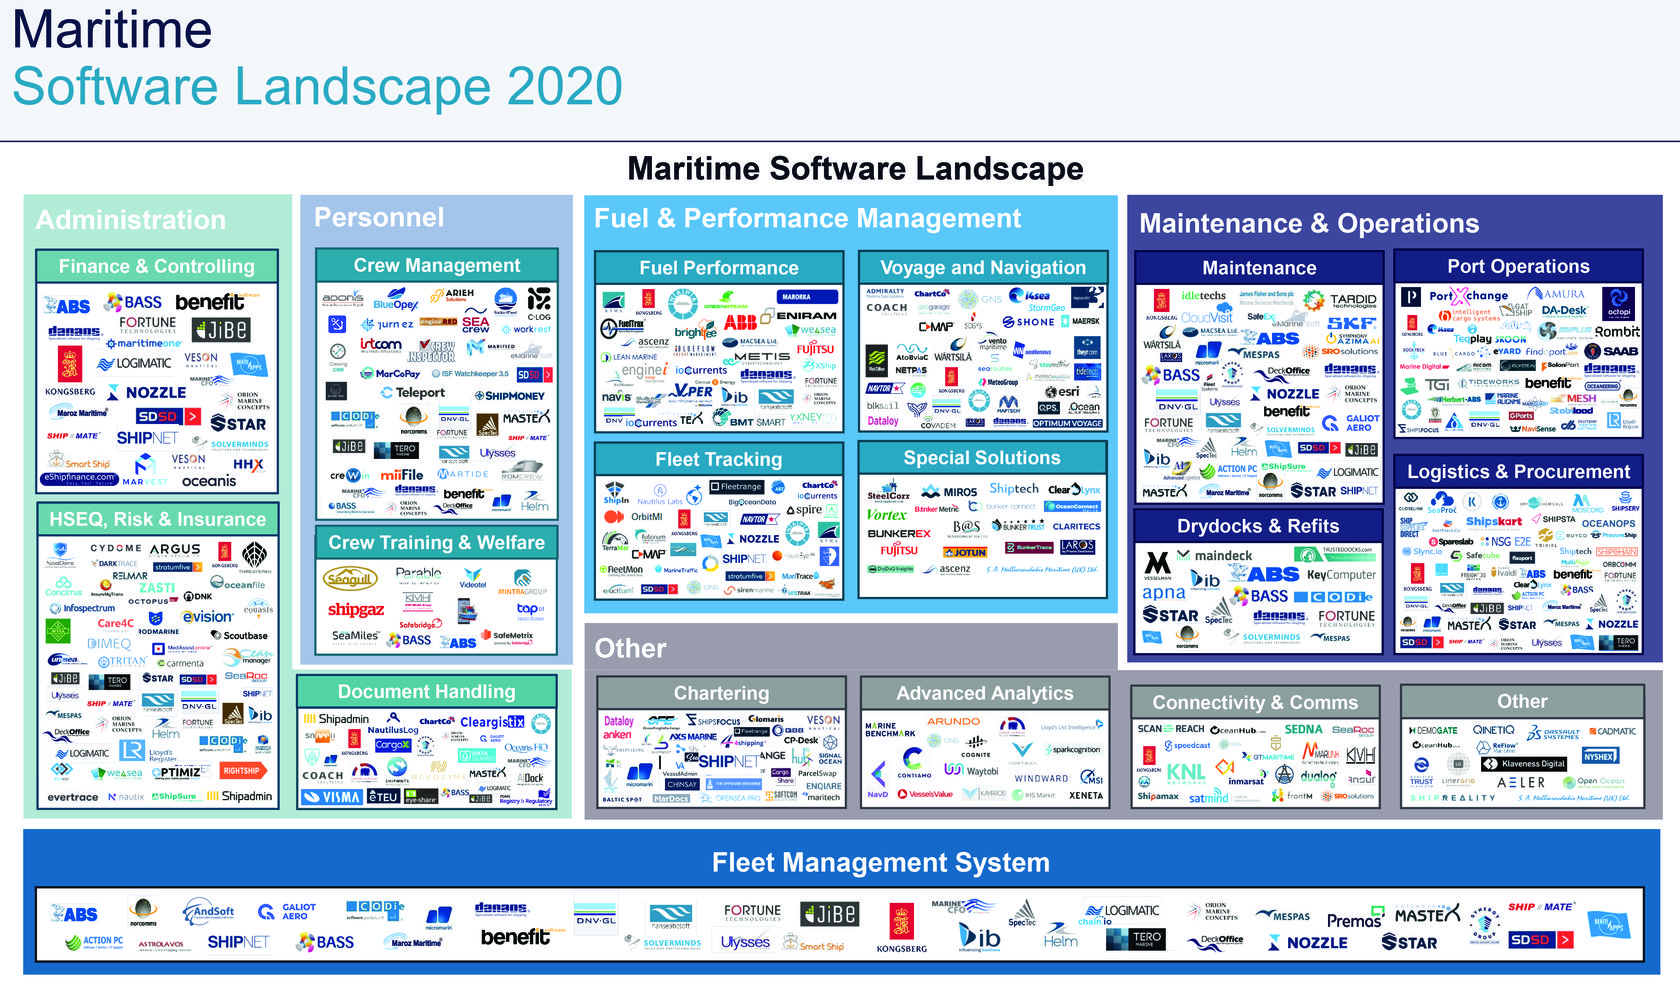 Mapping the Maritime Software Landscape